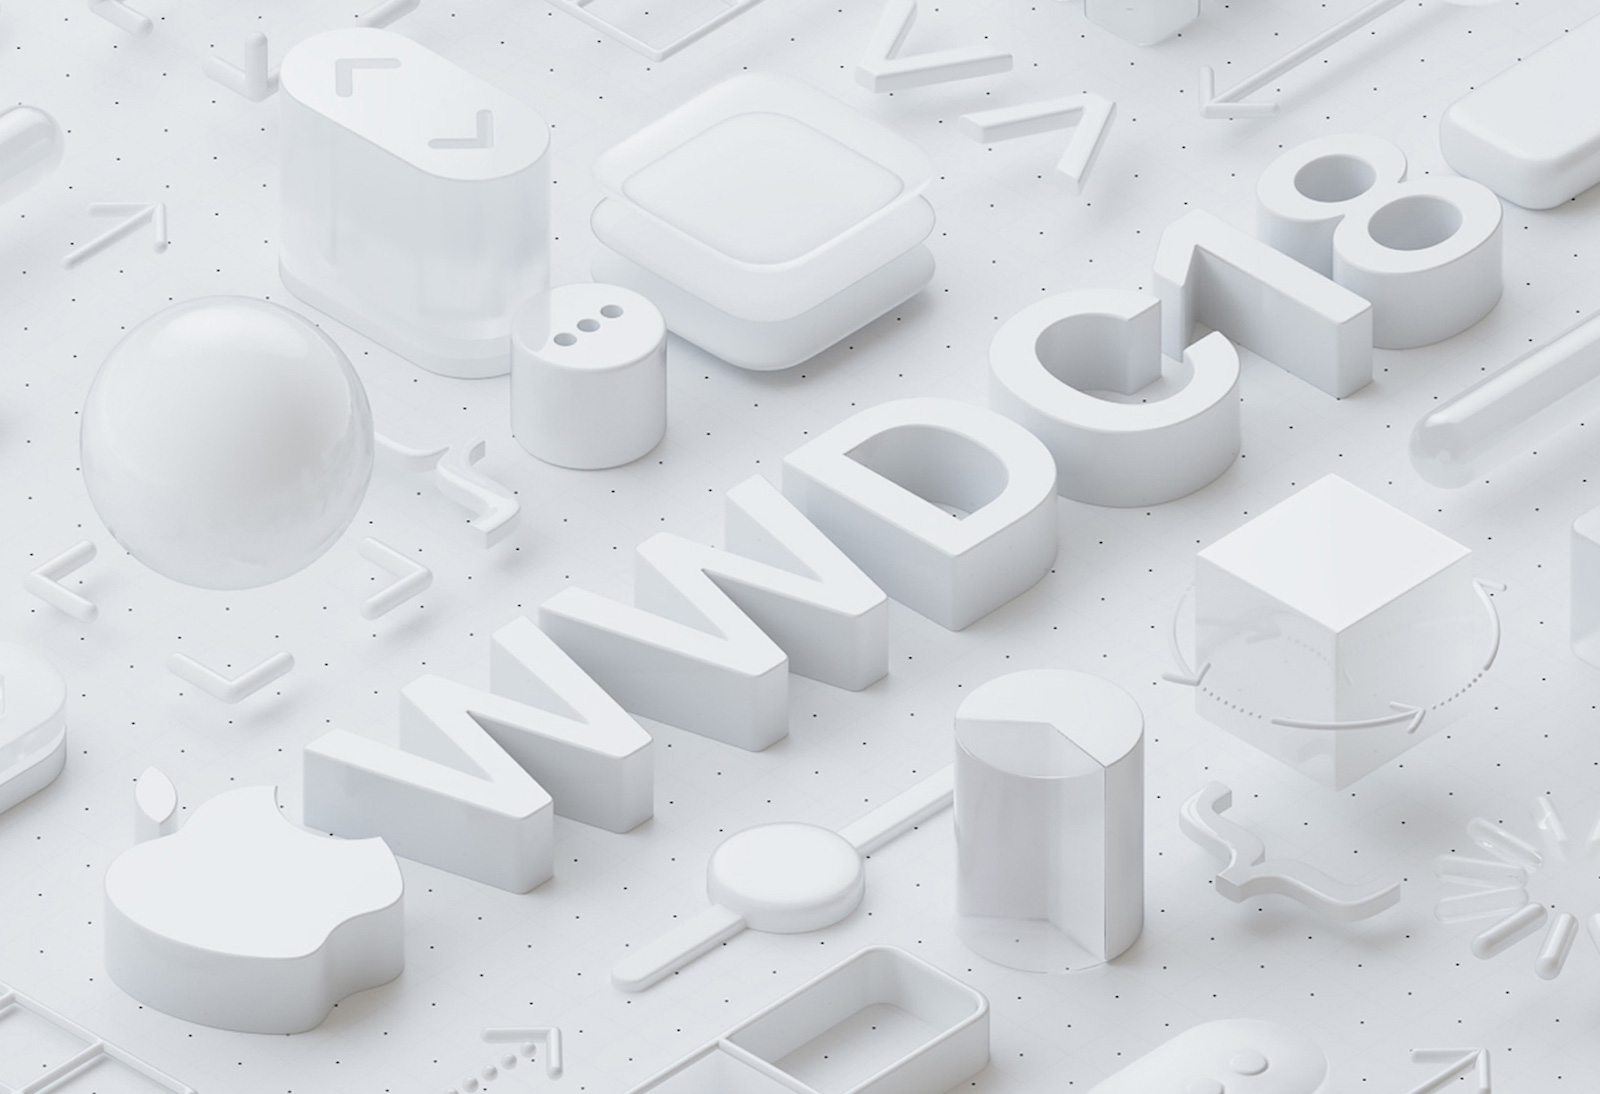 Don't Expect New Hardware at WWDC 2018